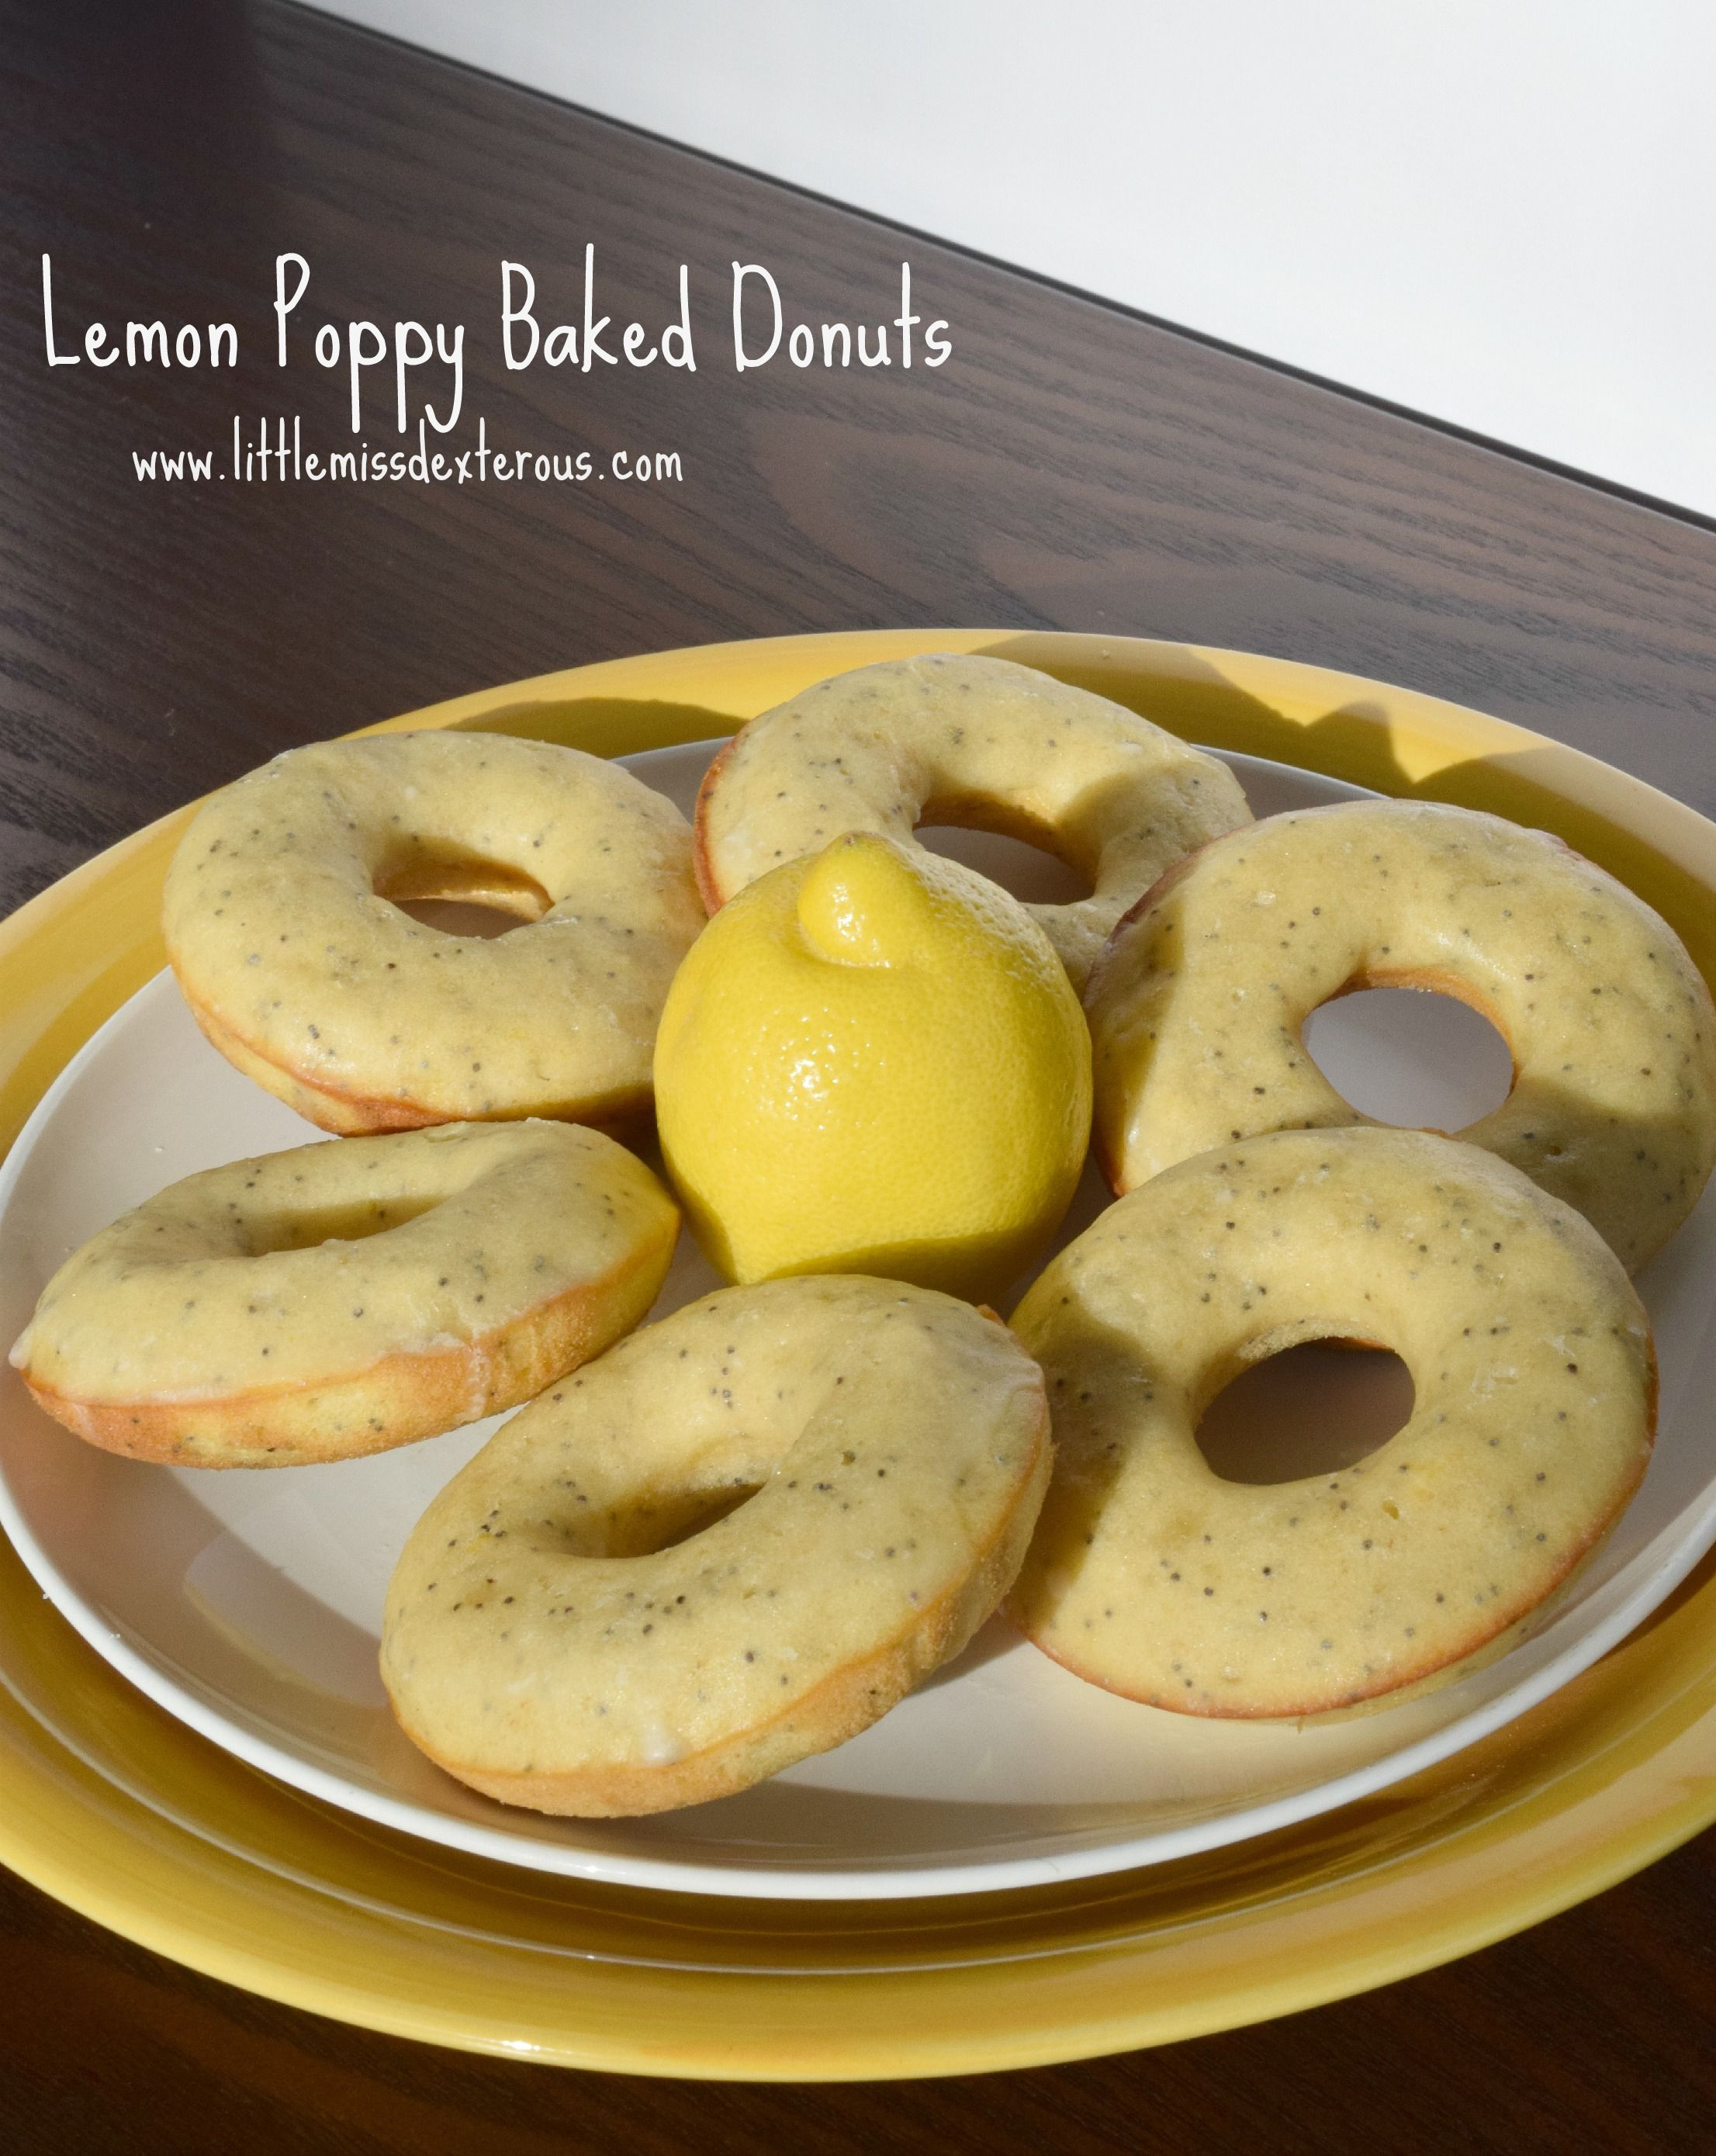 Lemon Poppy Baked Donuts are the perfect way to celebrate the coming of spring! These donuts are easy to make, healthy, and are delicious. Light and bright!